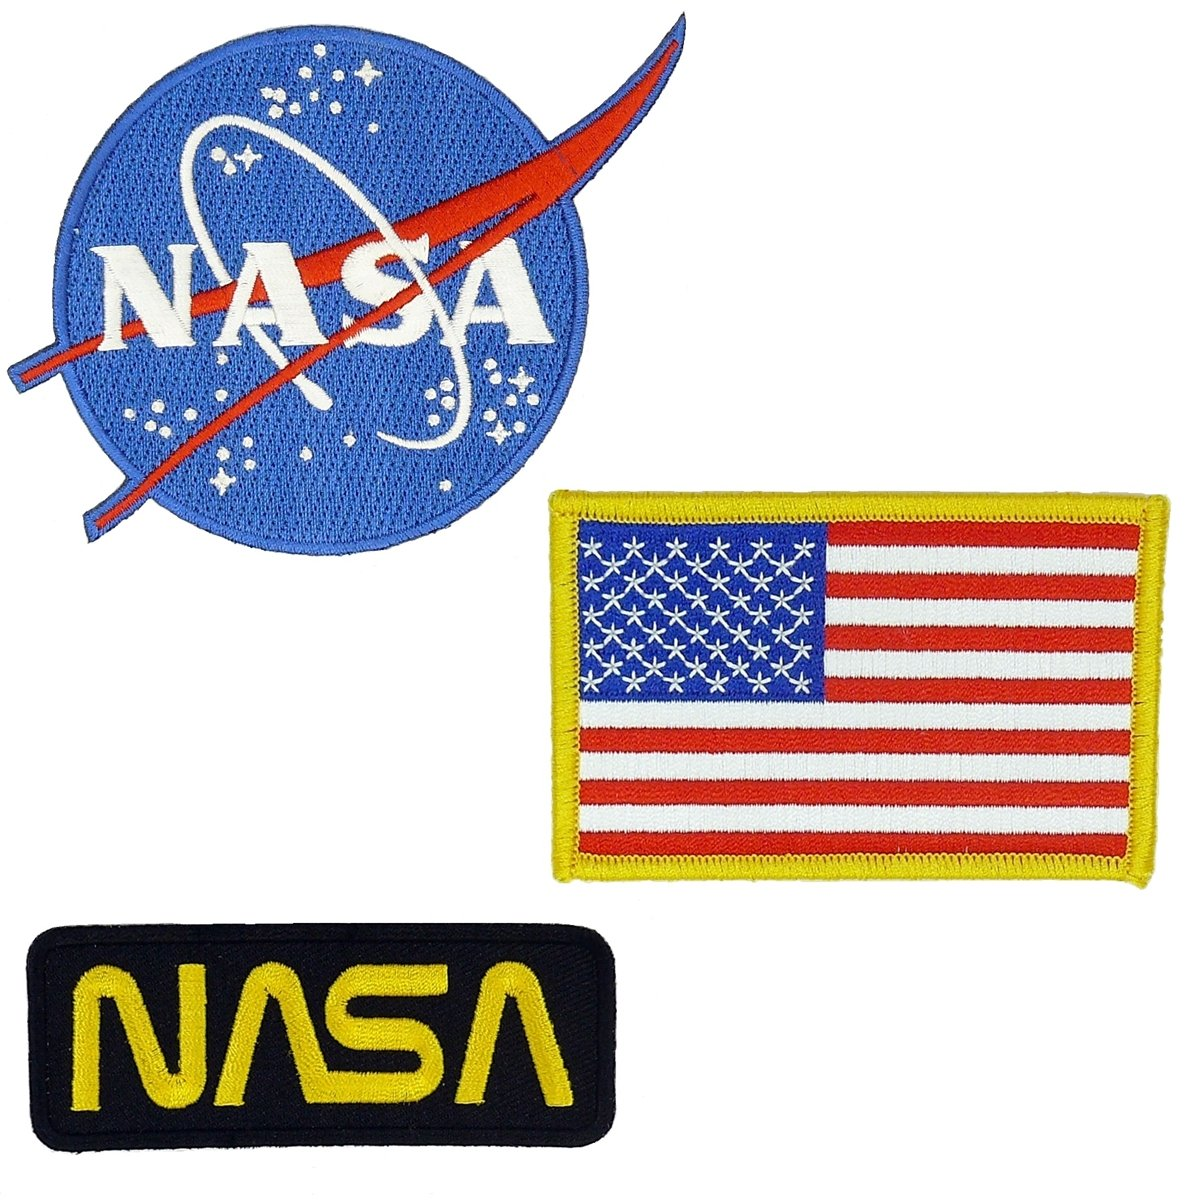 Nasa Blue Logo USA Flag Nasa Black/Gold Vector Space Shuttle Jacket DIY Embroidered Halloween Costume Badge Set of 3 Easy Iron/Sew On Patch